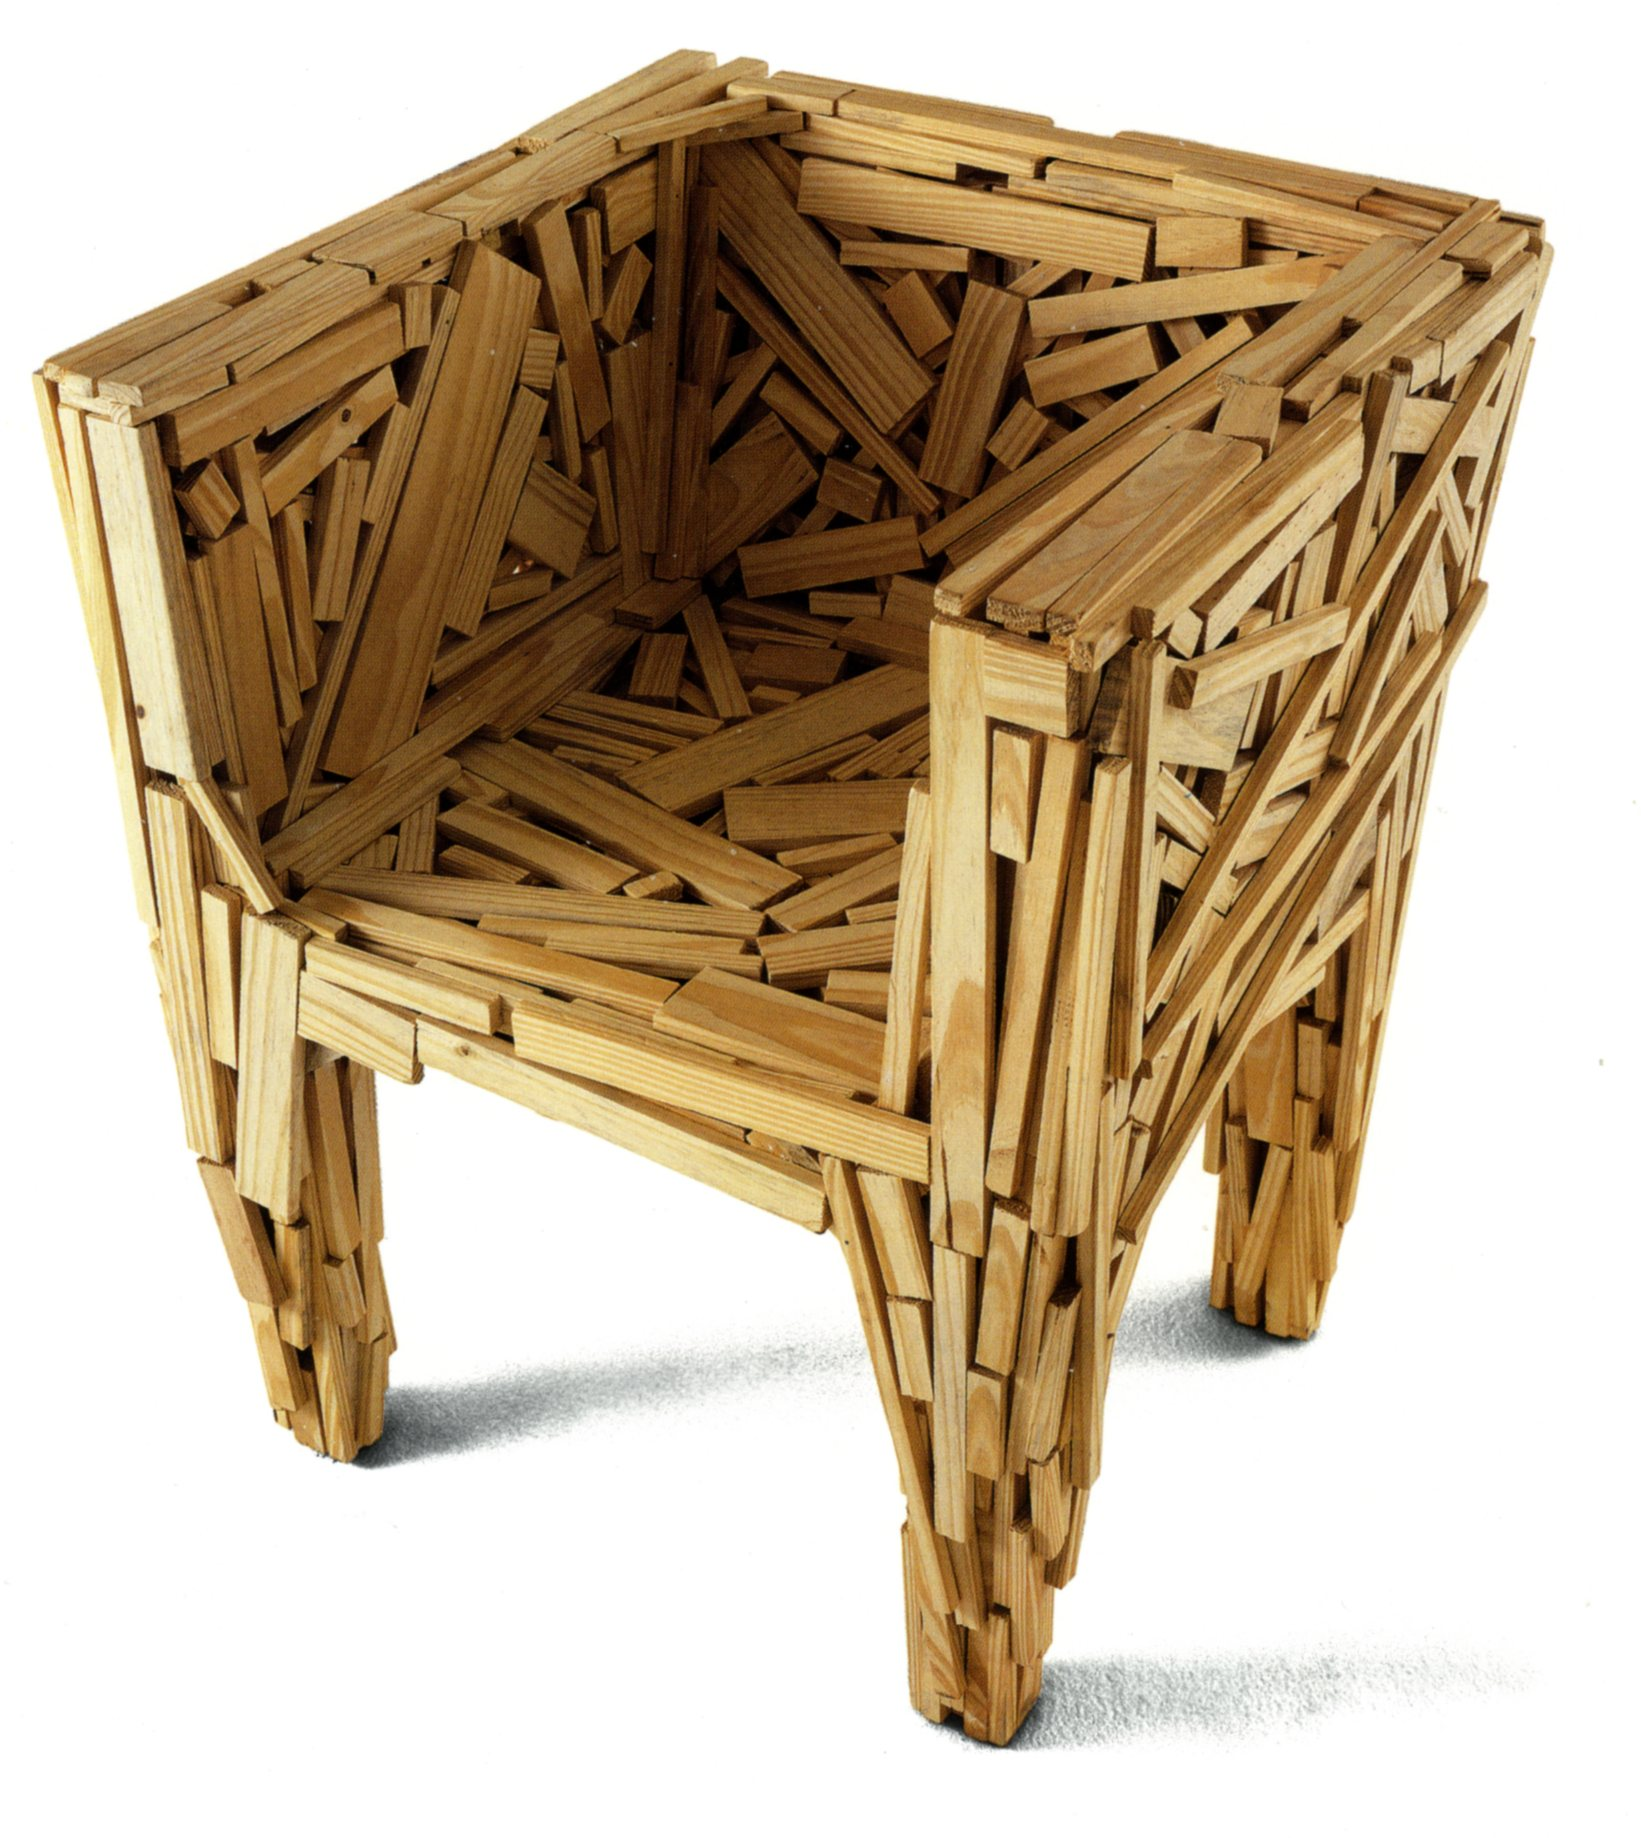 Favela Chair By The Campana Brothers